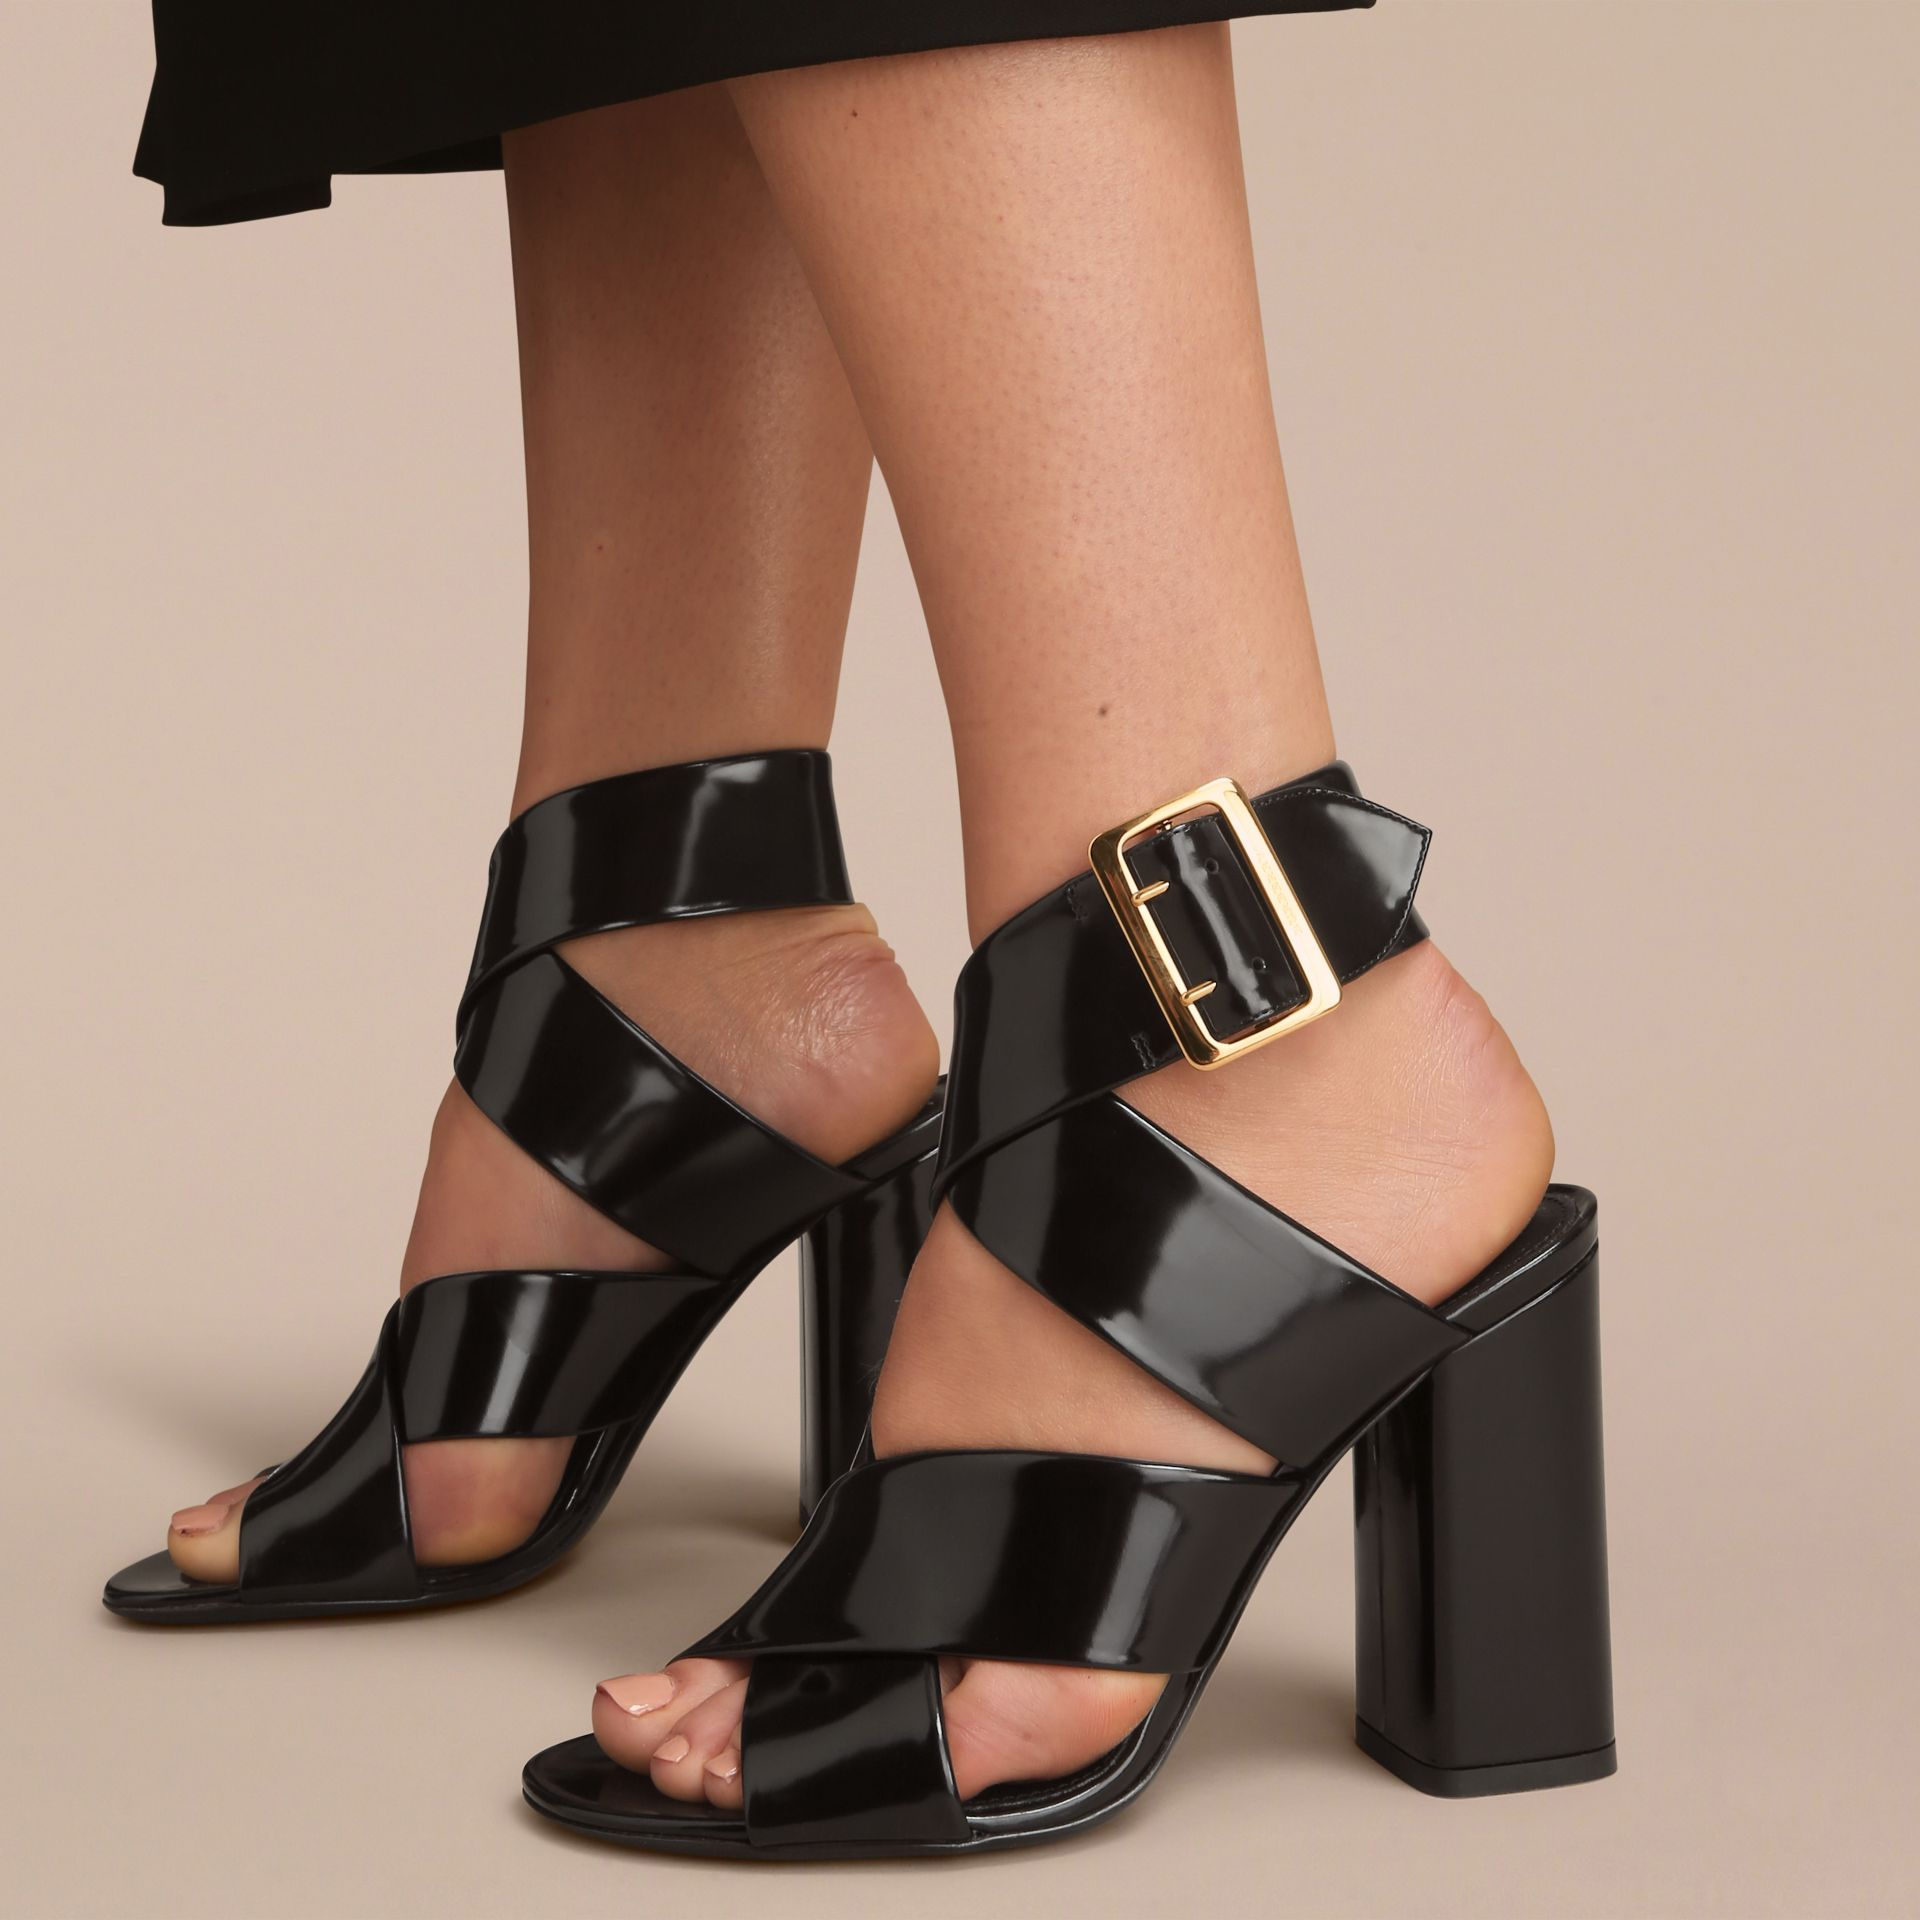 Buckle Detail Patent Leather Sandals - Women | Burberry - gallery image 3